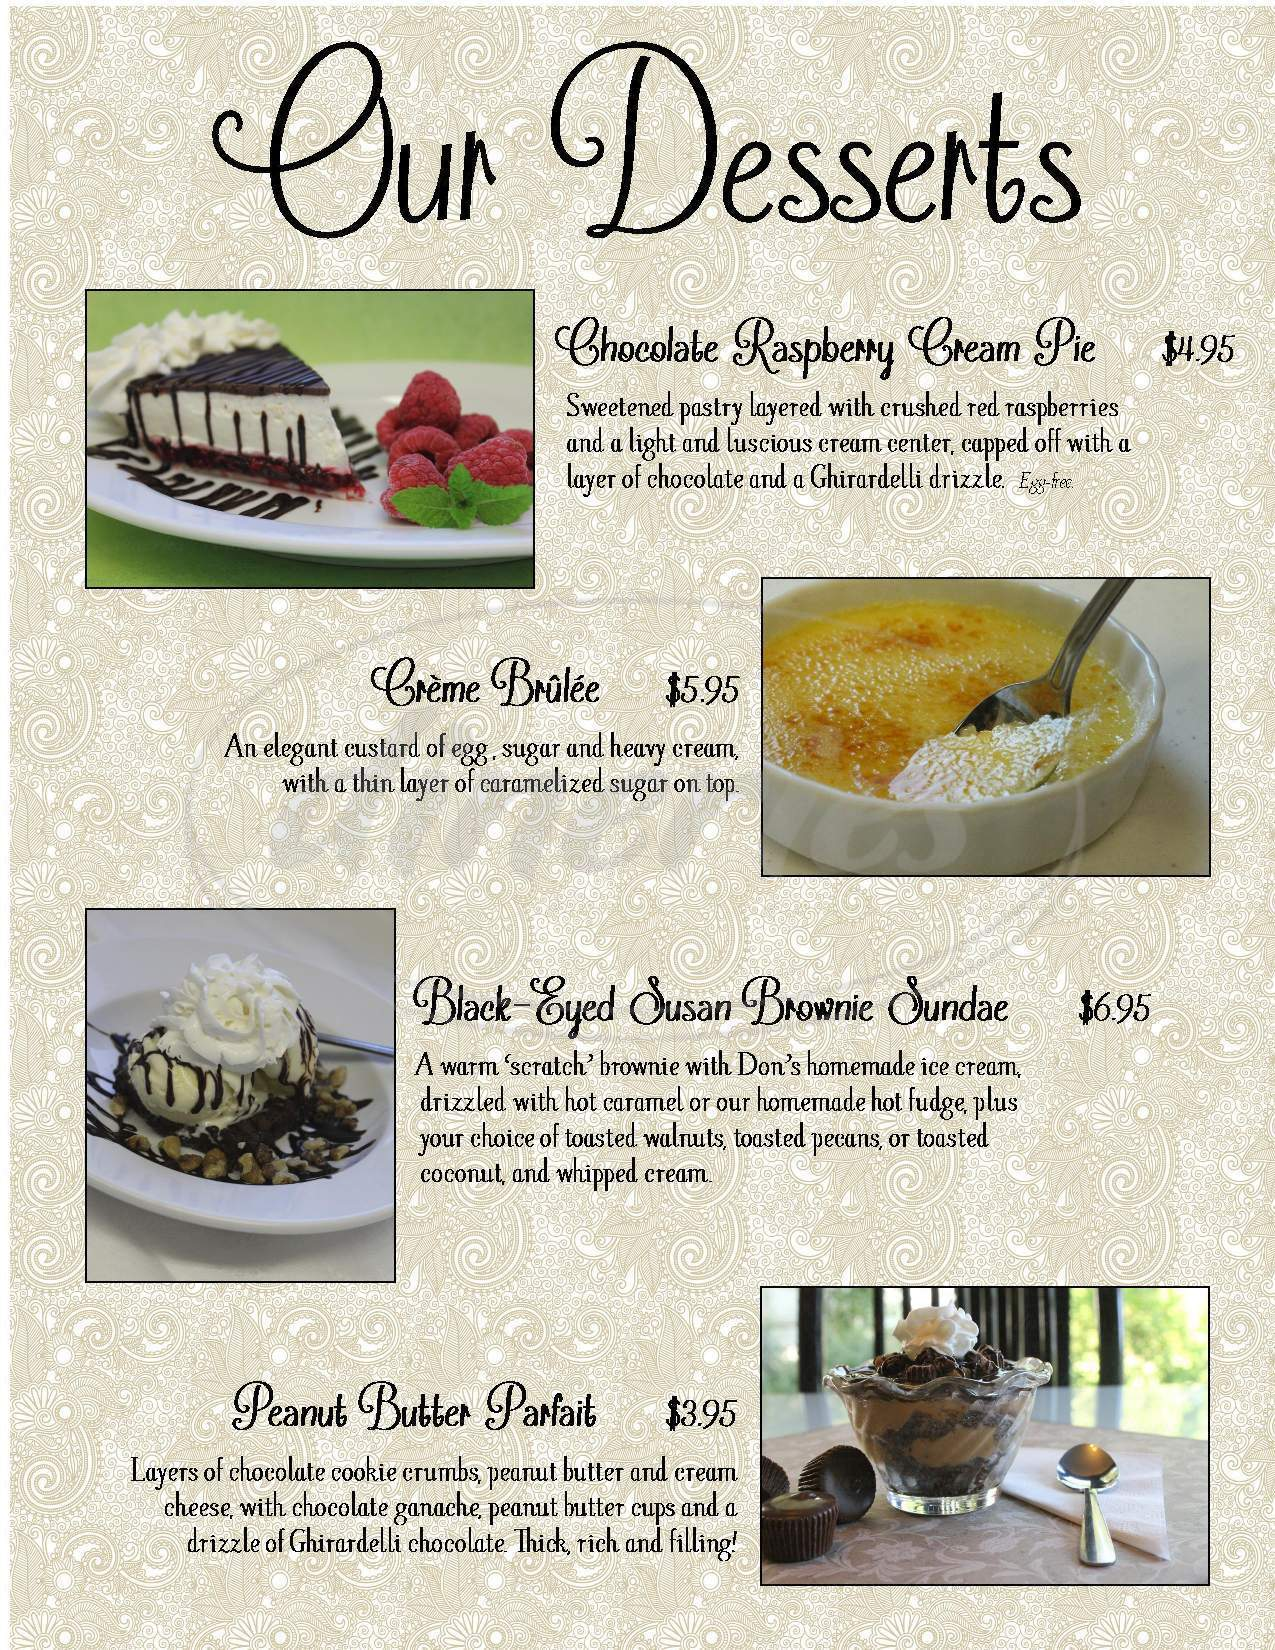 menu for Black-Eyed Susan Acoustic Cafe